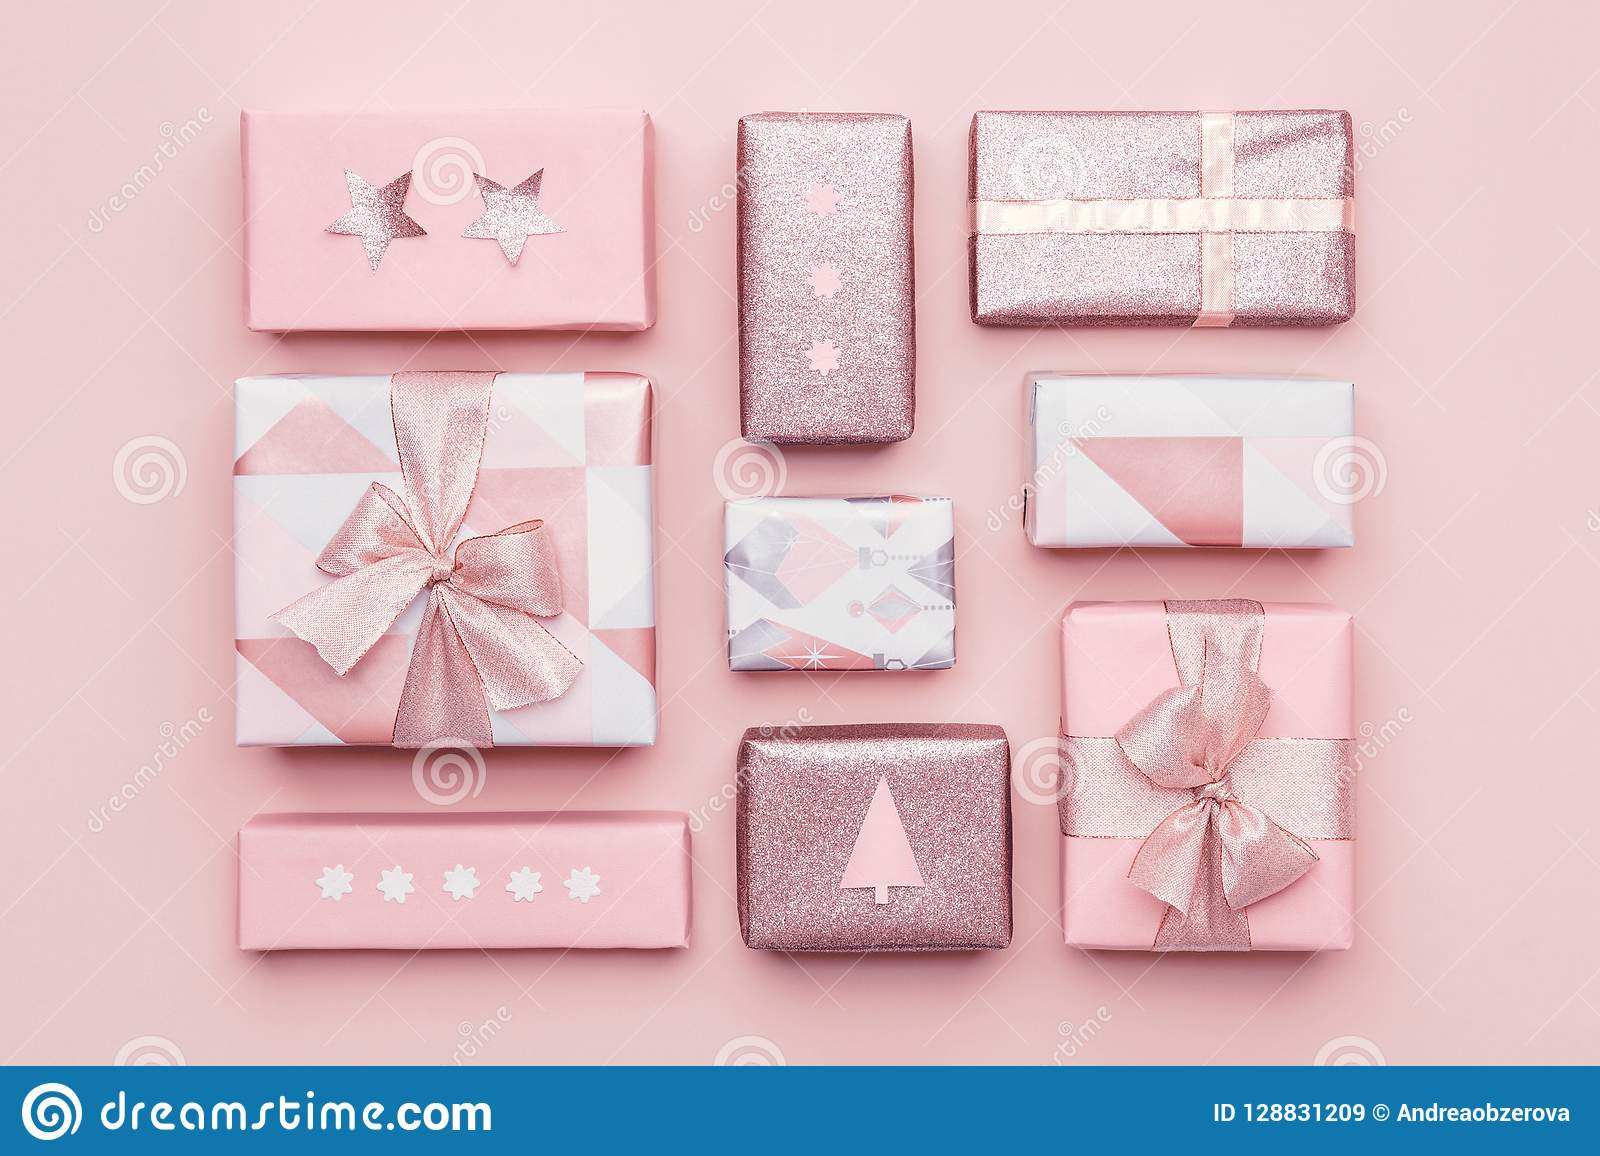 Gift wrapping composition. Beautiful nordic christmas gifts isolated on pastel pink background. Pink colored wrapped gift boxes.